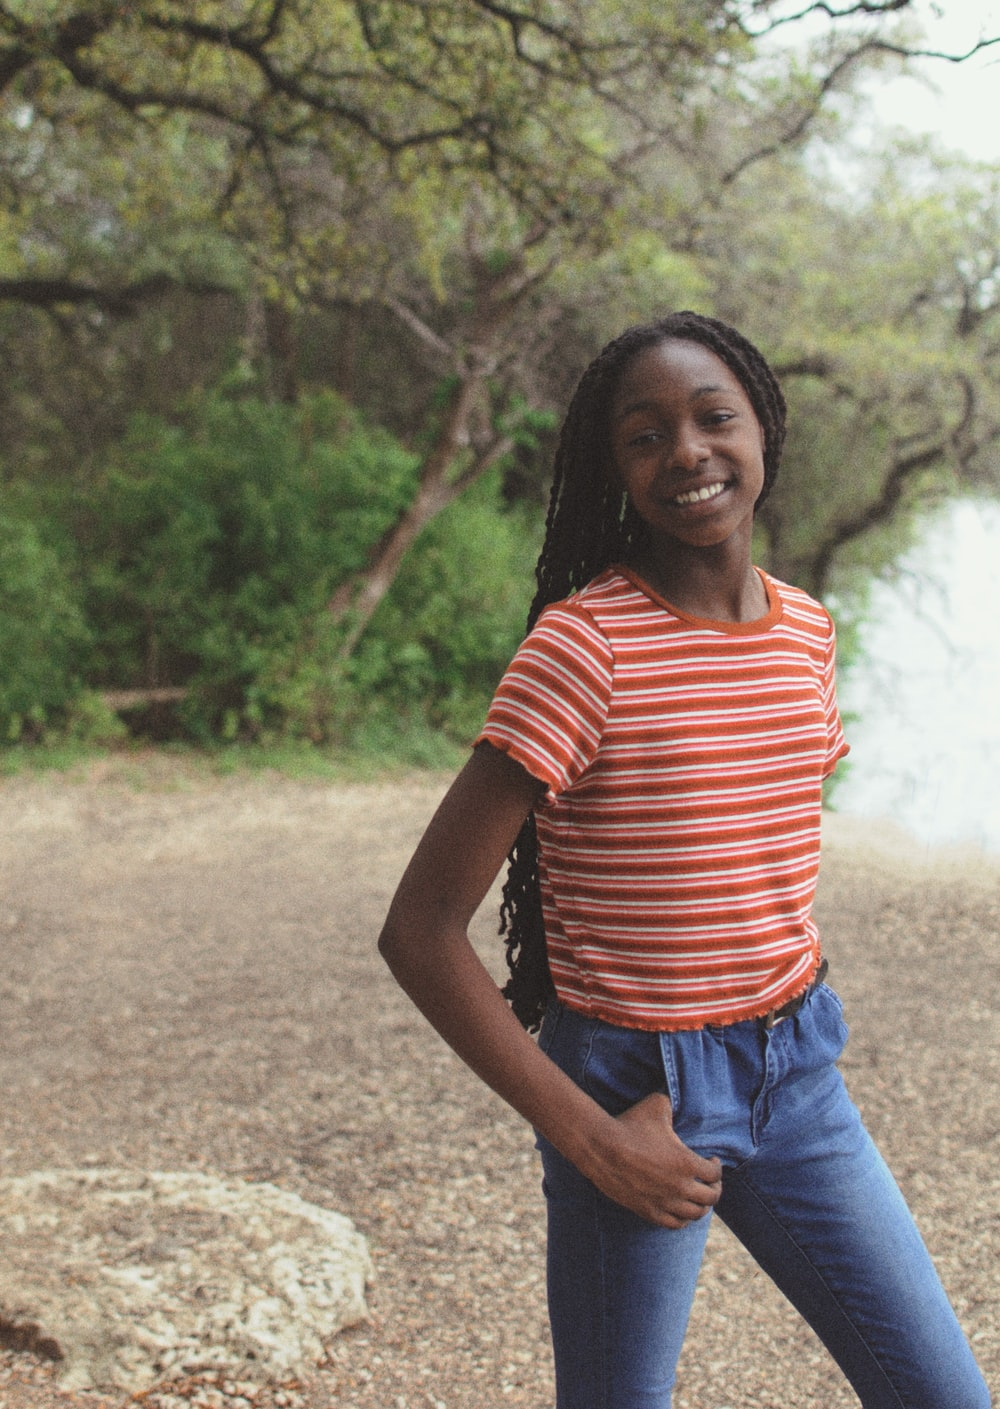 woman in red and white striped shirt and blue denim jeans standing on dirt road during